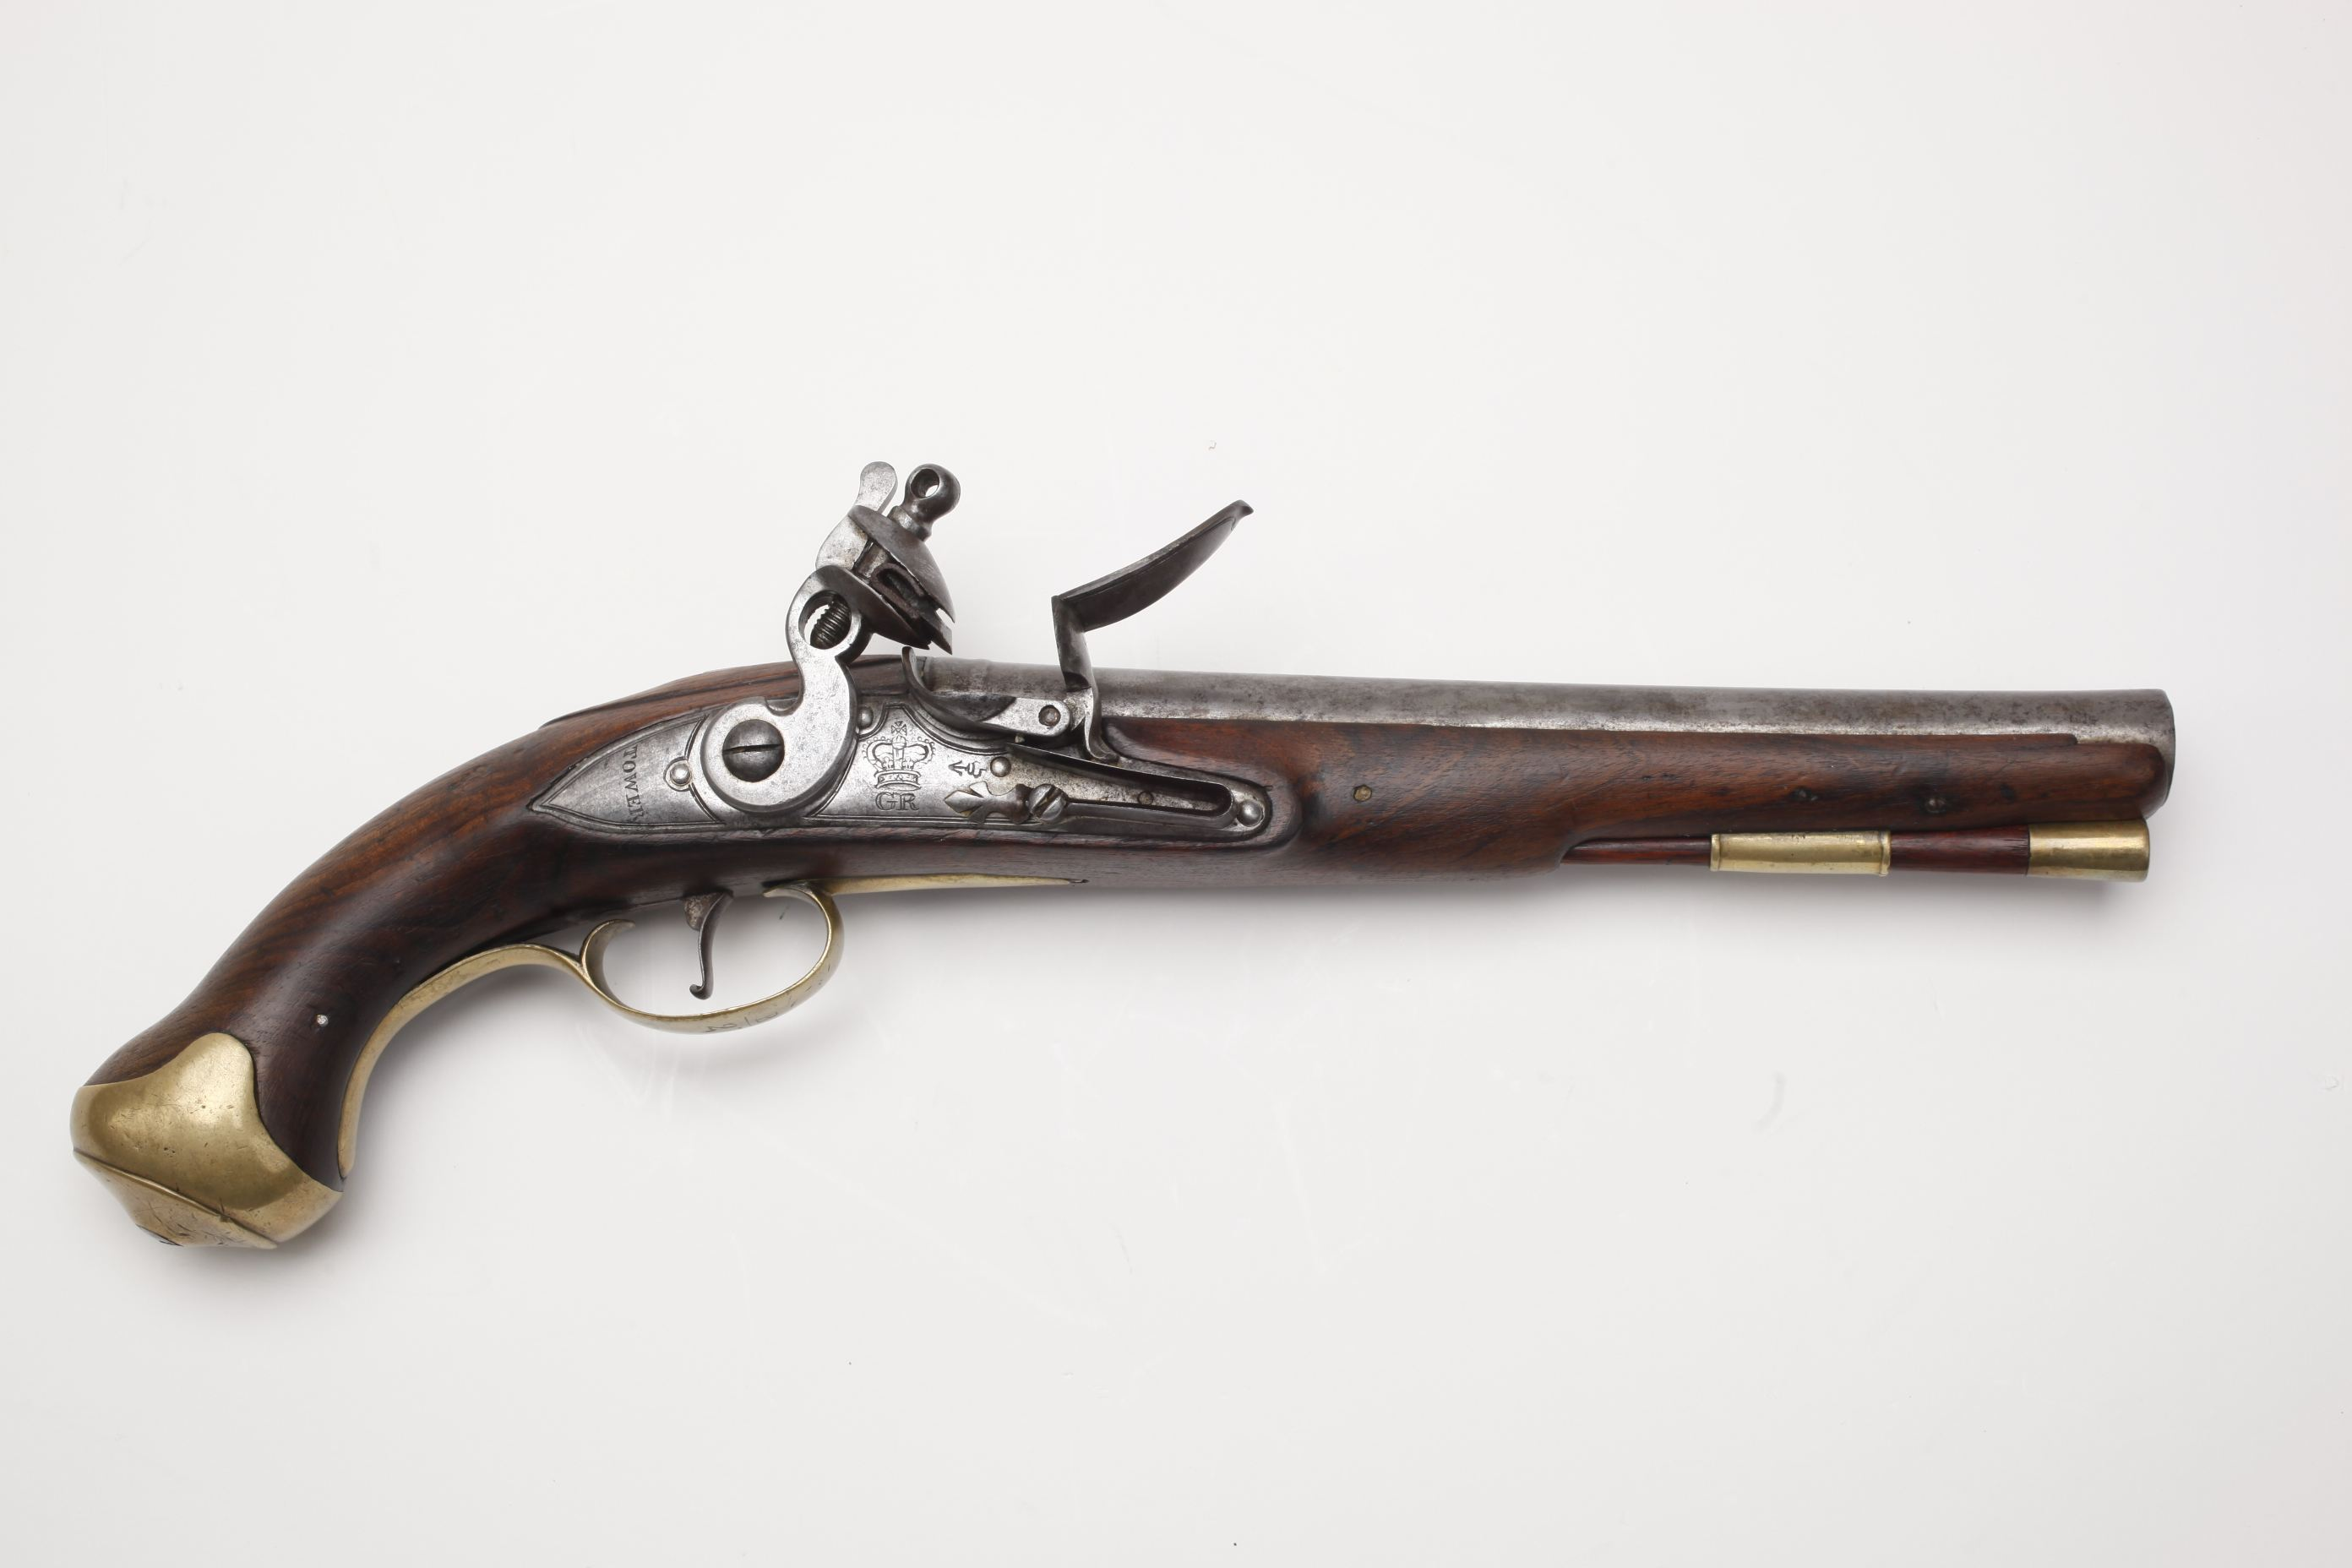 Tower Model 1760 Flintlock Pistol